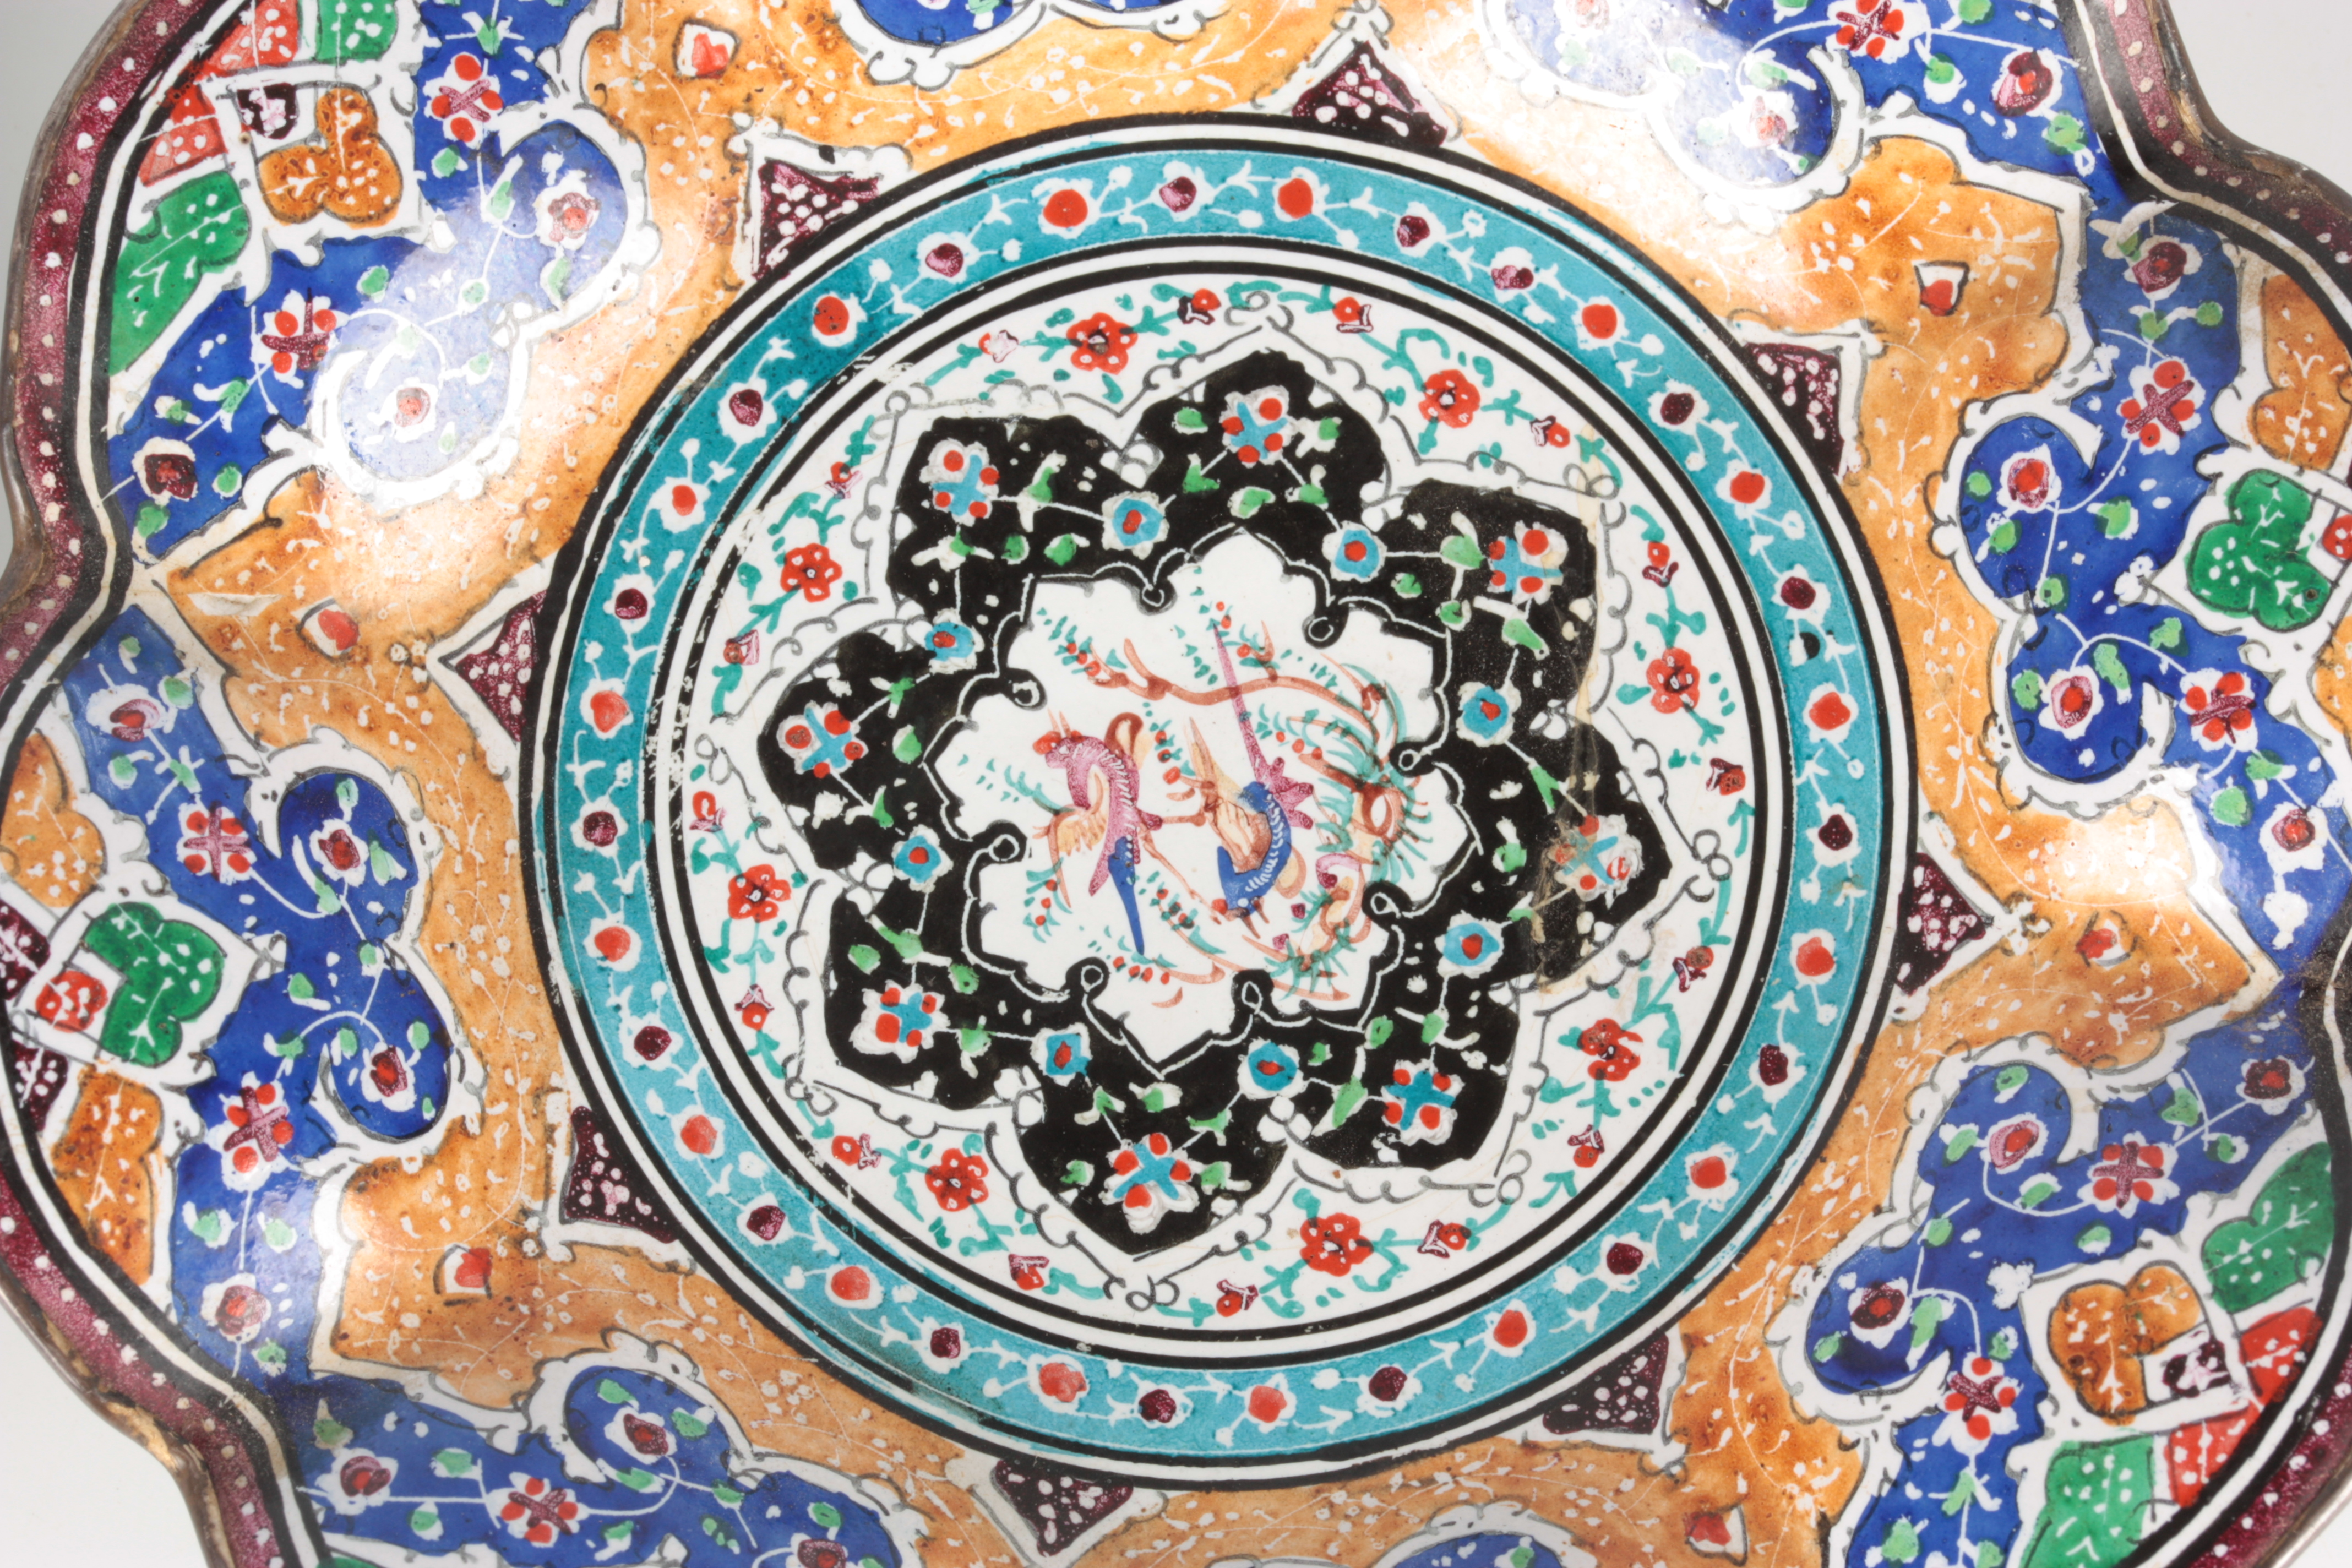 TWO 19TH CENTURY ISNIC ENAMELED DISHES having scalloped edges with birds, flowers, and geometric - Image 4 of 6